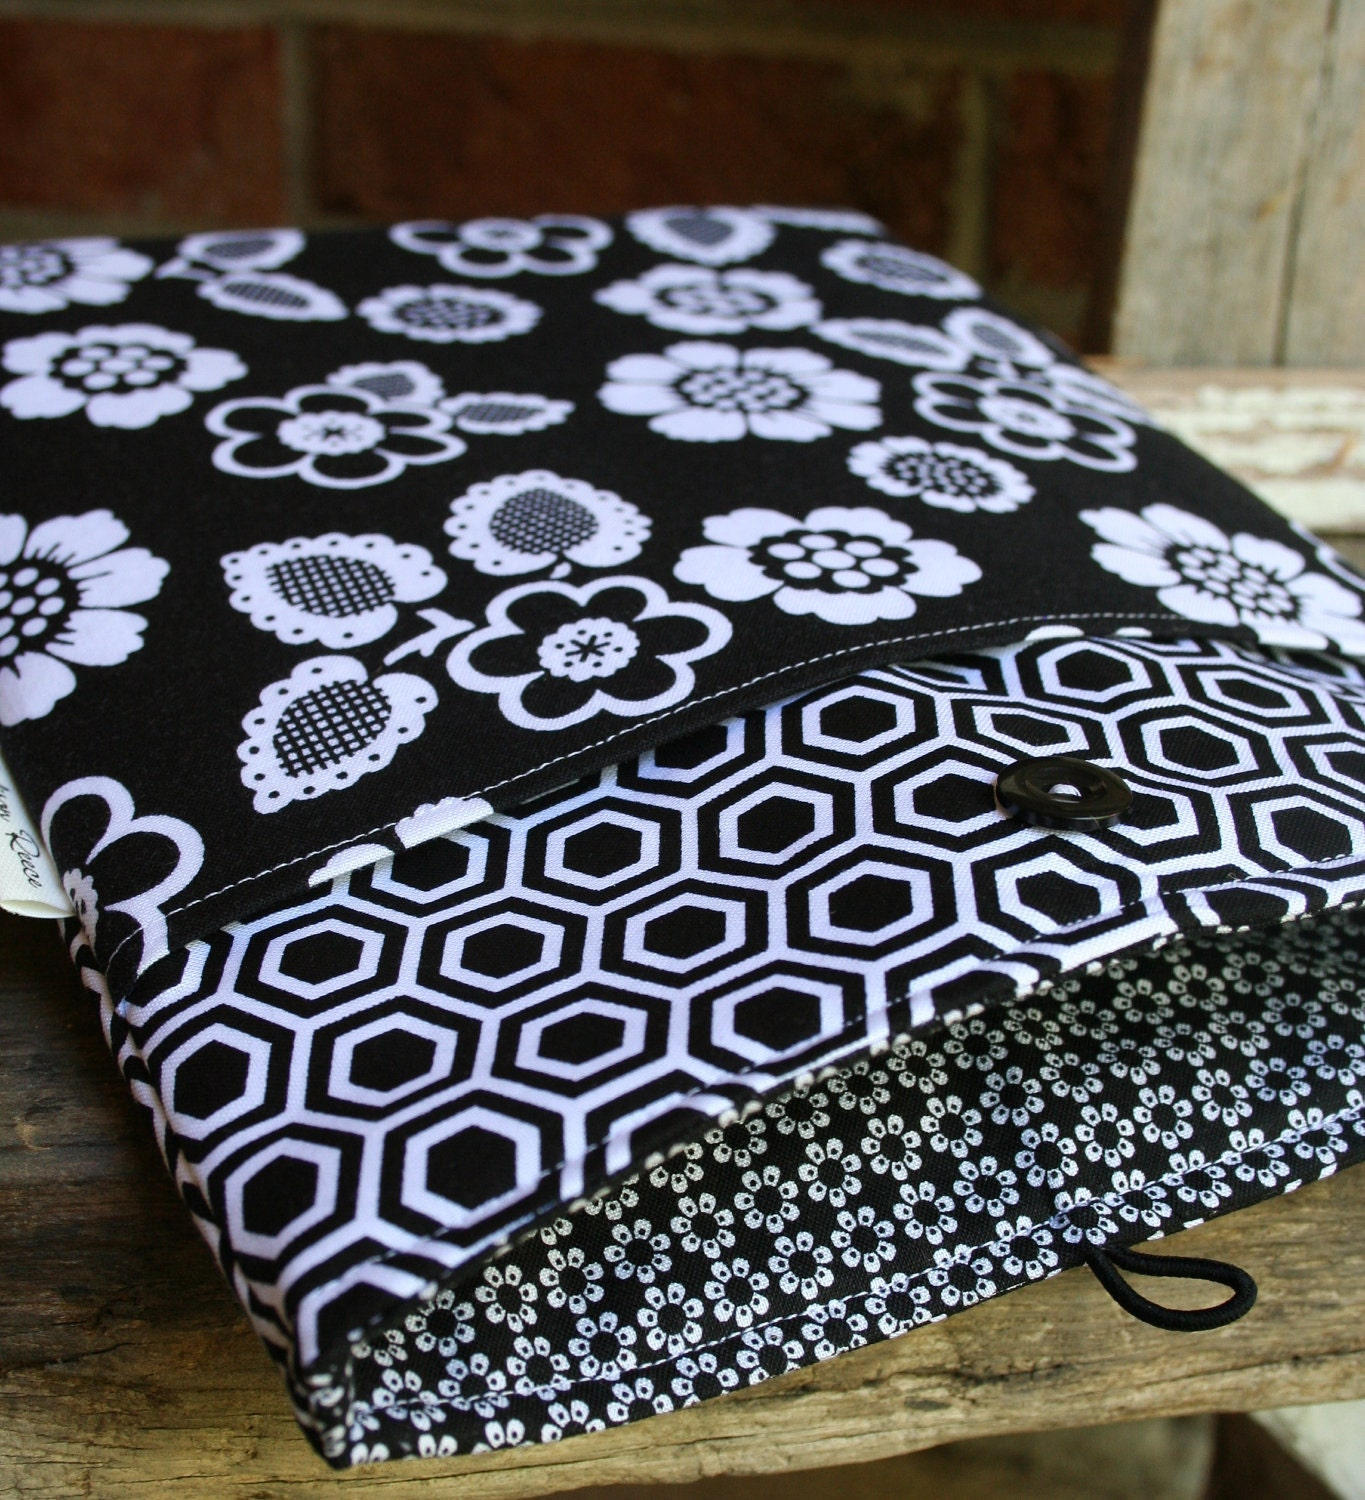 Ipad or Ipad 2 Case or Cover in Black and White Floral with front pocket - Completely padded, custom orders or colors available.